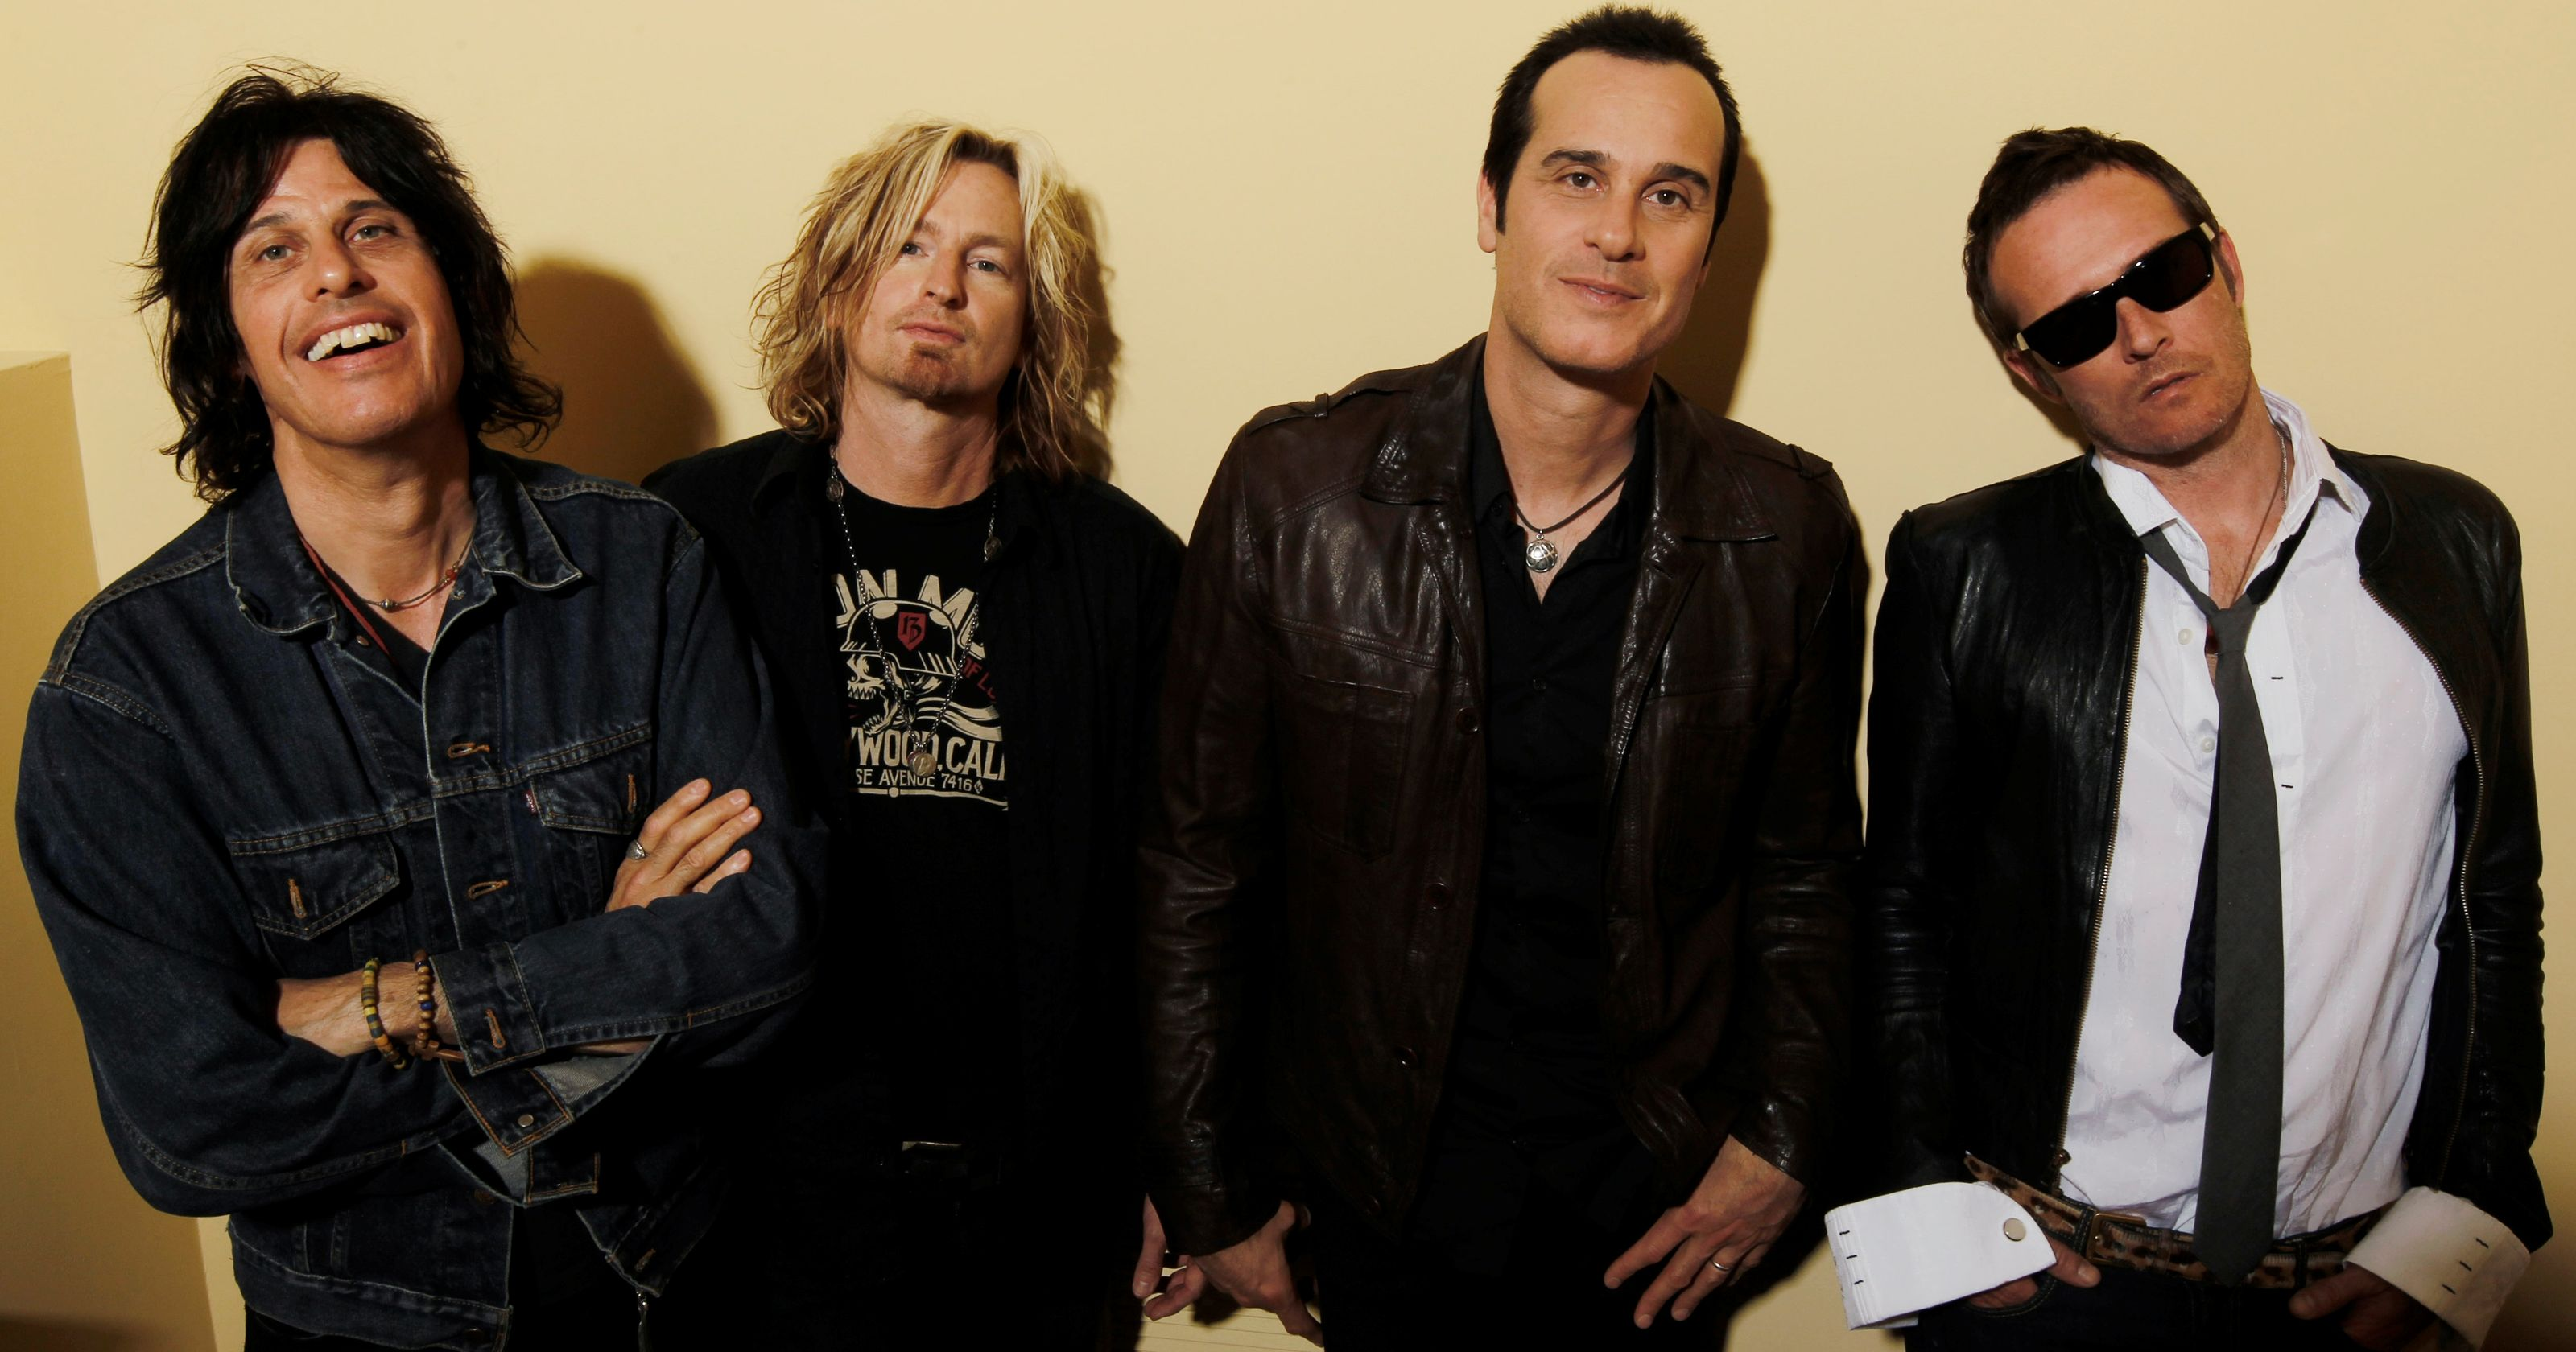 HQ Stone Temple Pilots Wallpapers   File 432.69Kb